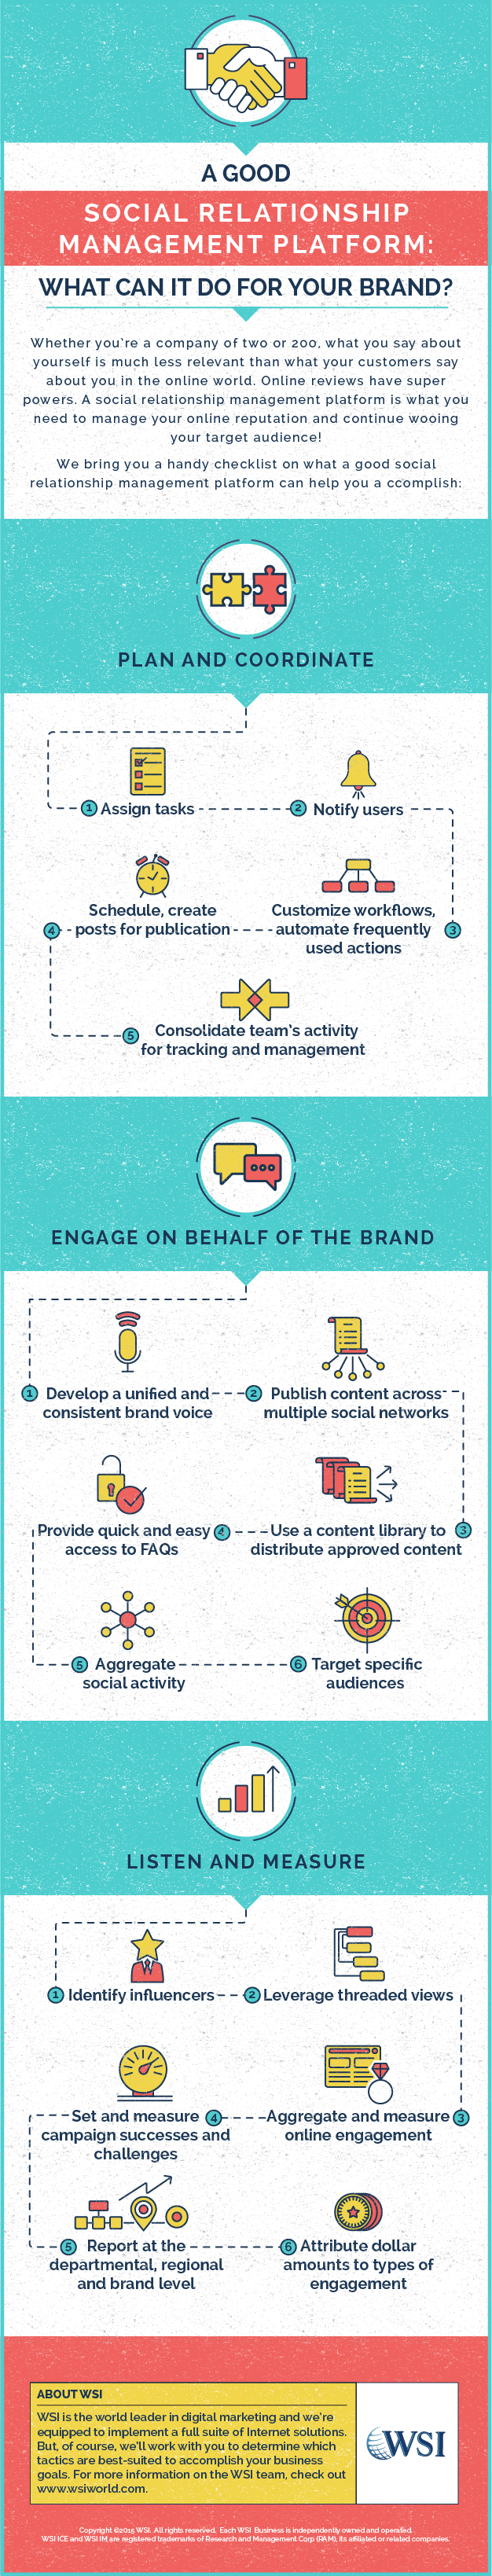 What A Good Social Relationship Management Platform Can Do For Your Brand Infographic